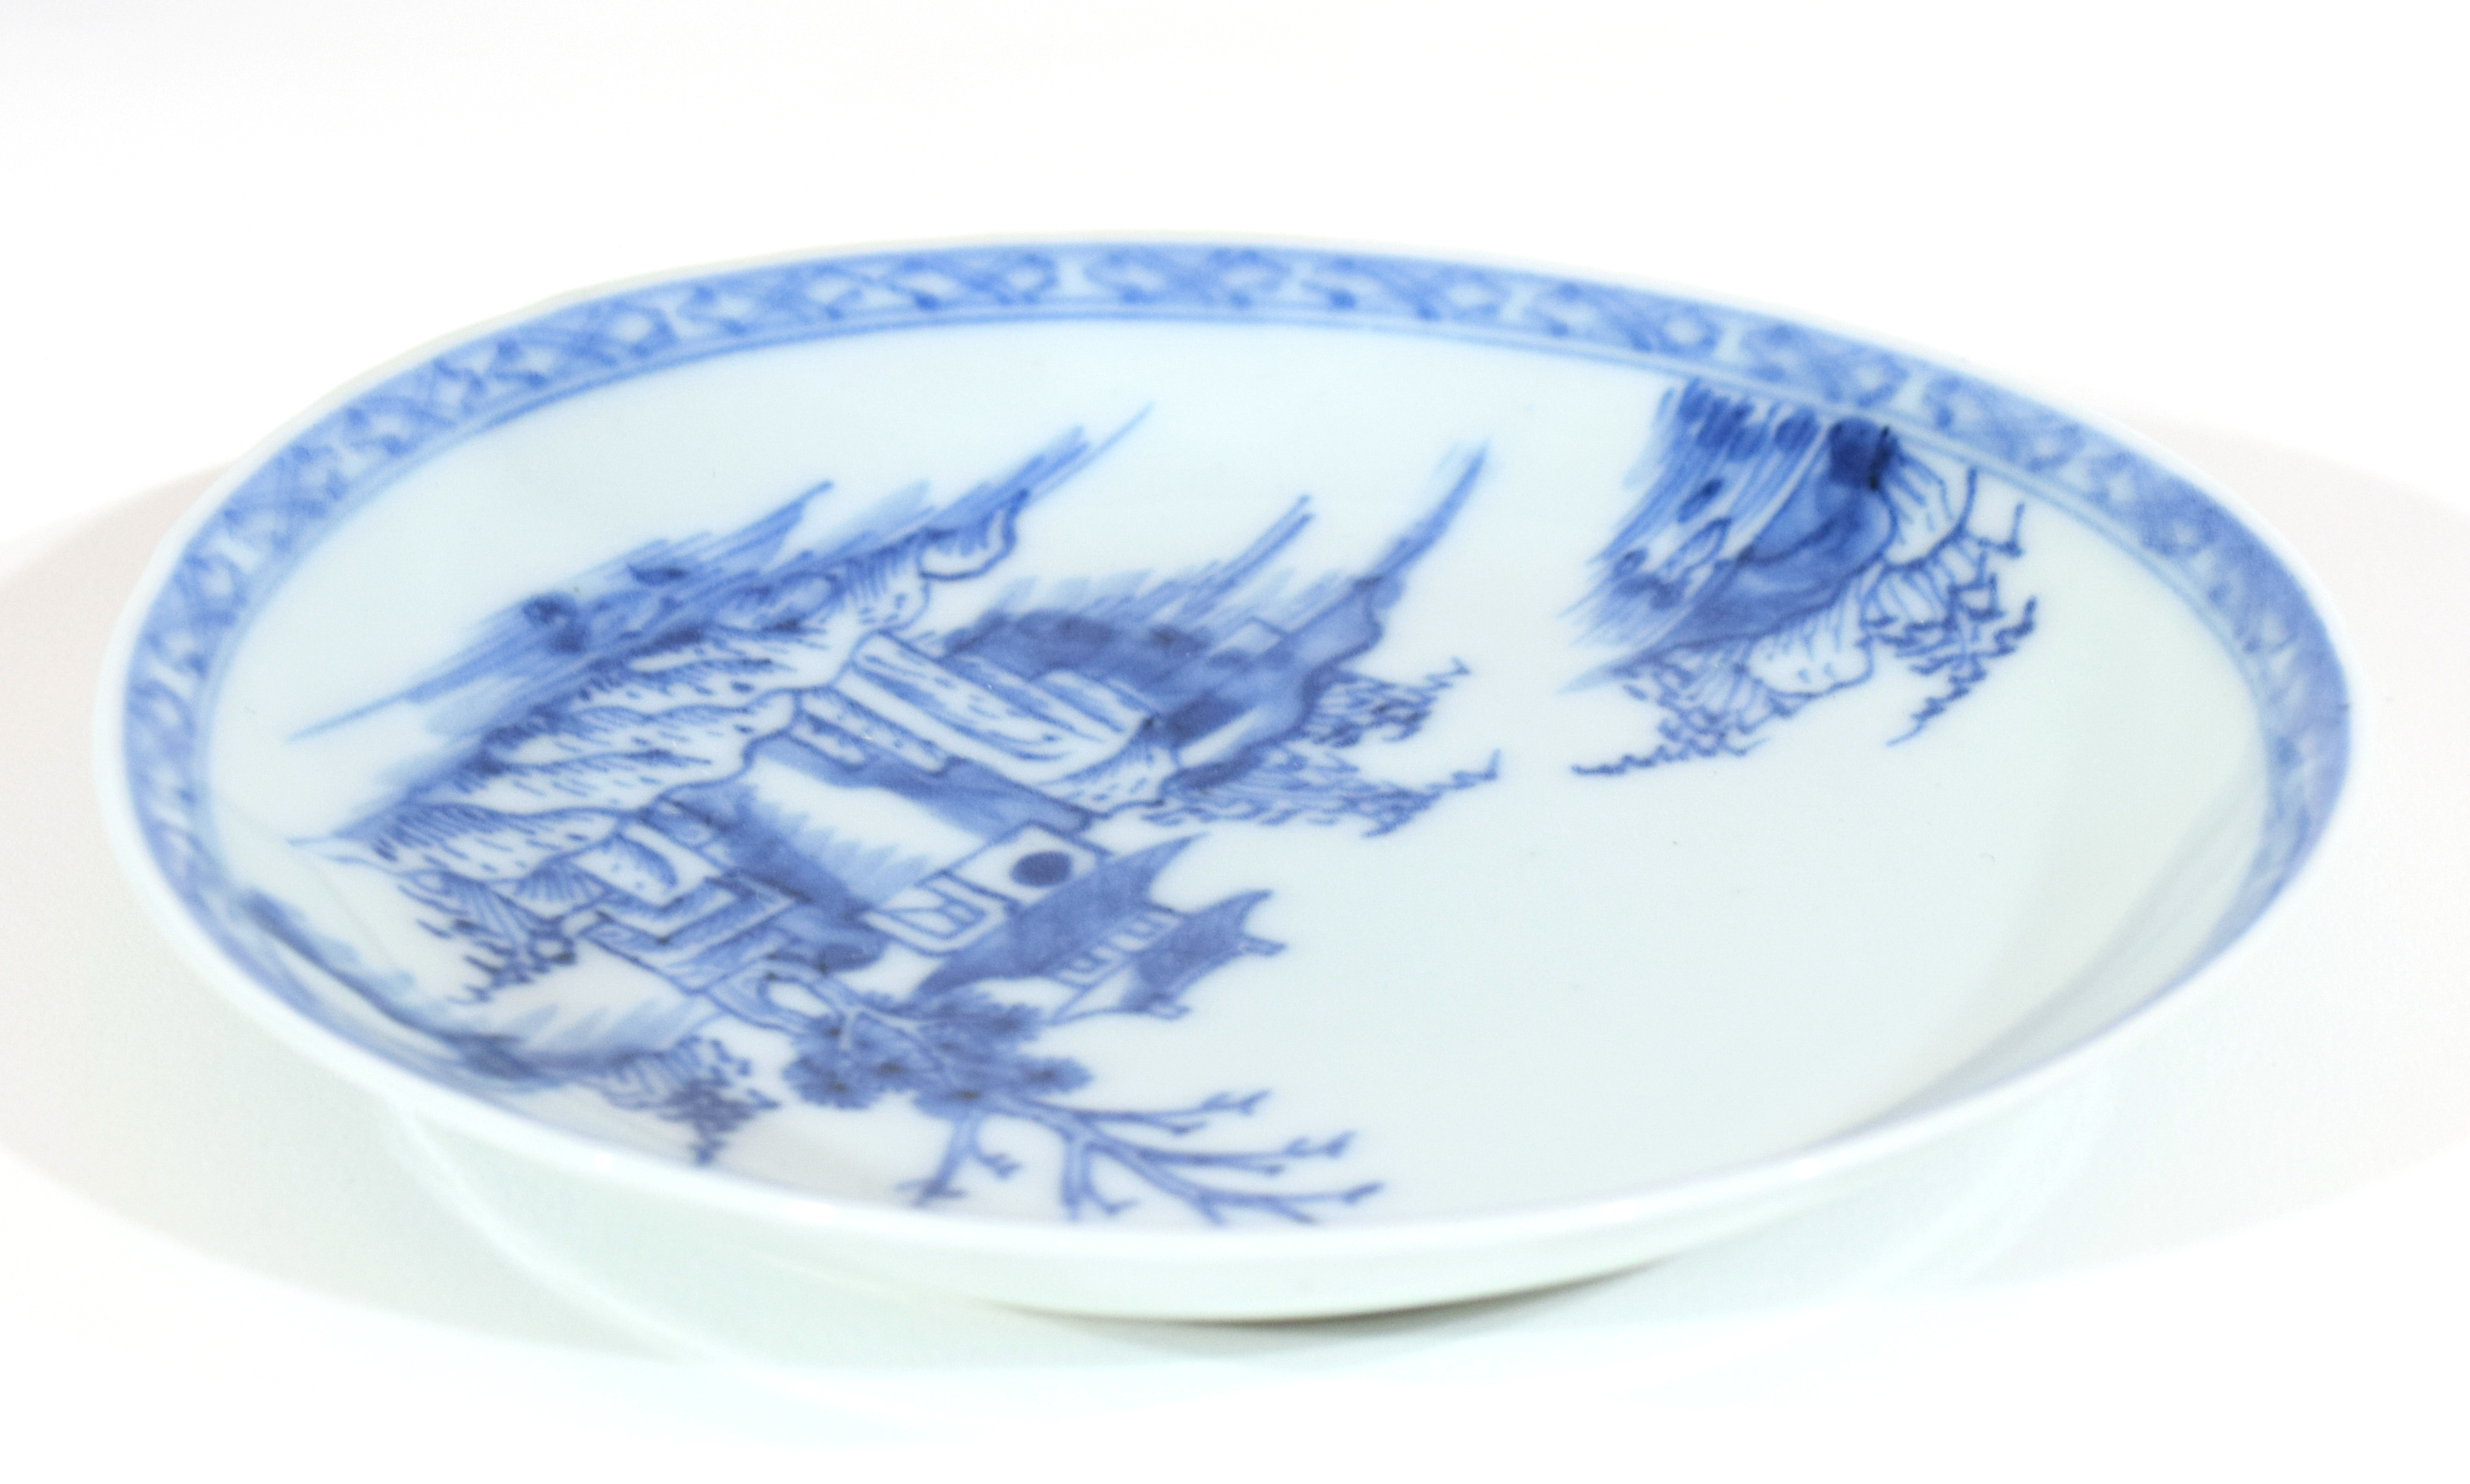 18th century Chinese porcelain Nanking Cargo tea bowl and saucer - Image 15 of 15